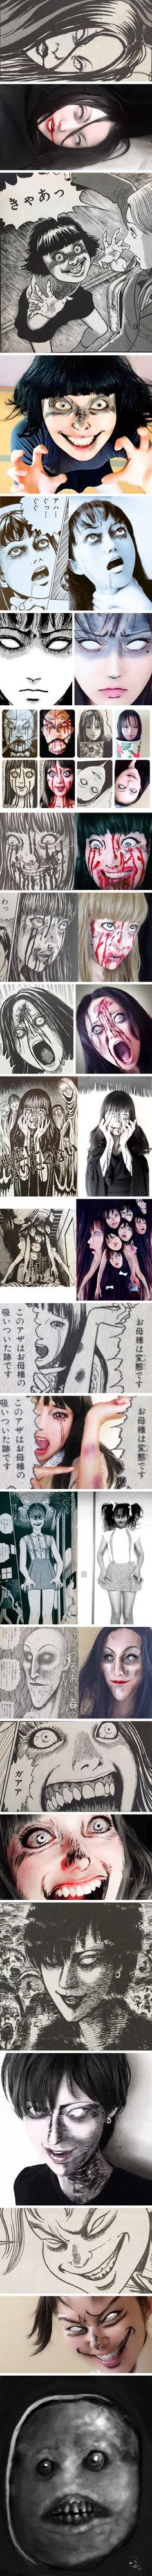 Recreating Scary Girls In Junji Ito's Manga With Facepaint - 9GAG